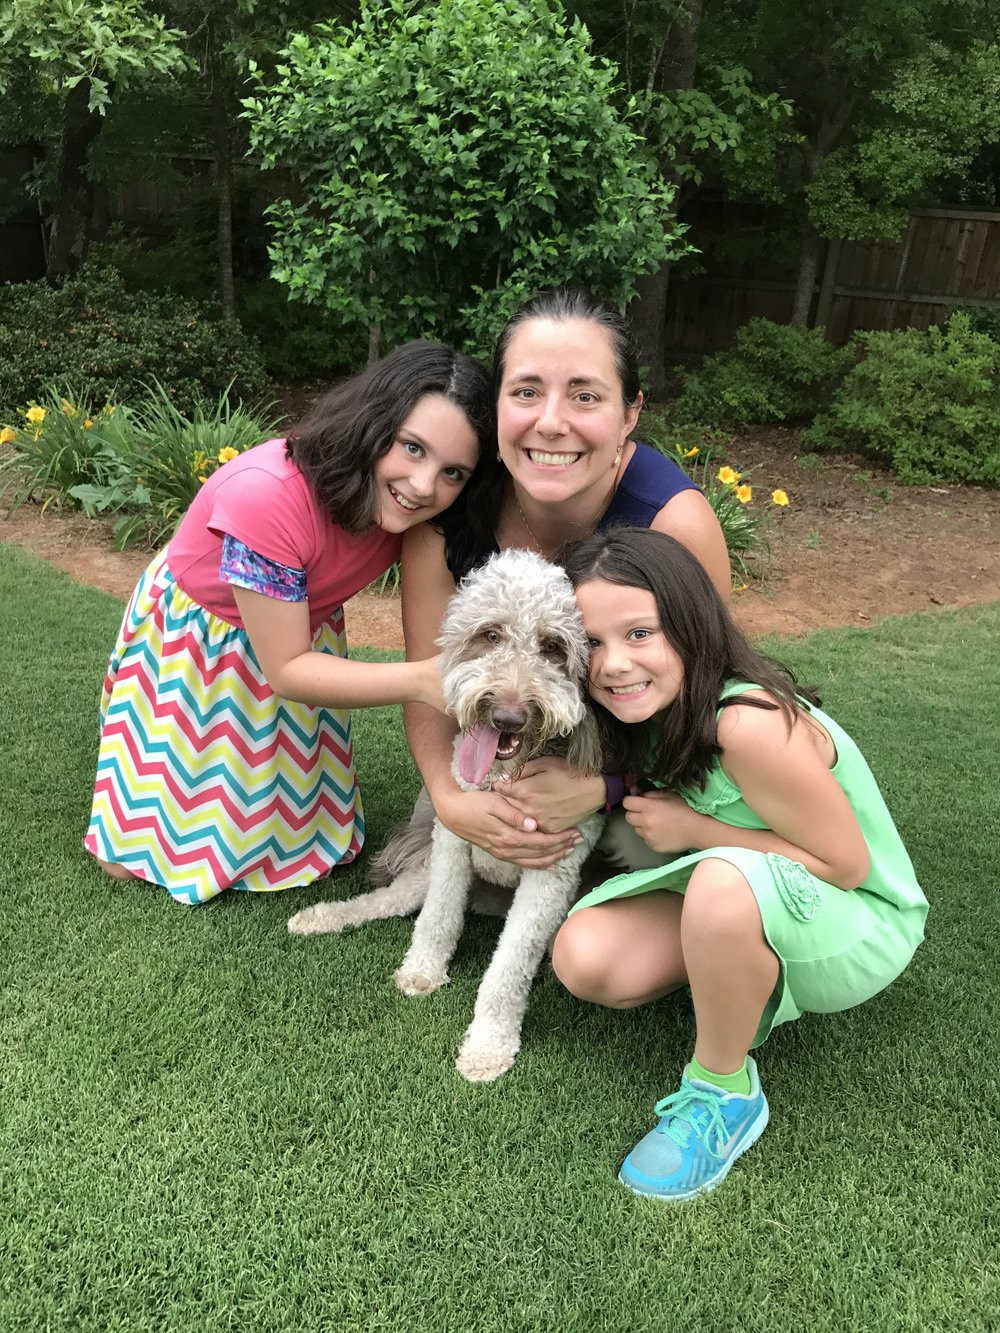 Holly & Kelly & Katherine & Amelia - We loved our training at Super Dooper dog training with our puppy - great socialization in a small class atmosphere. Can't wait to take more training with Pat!